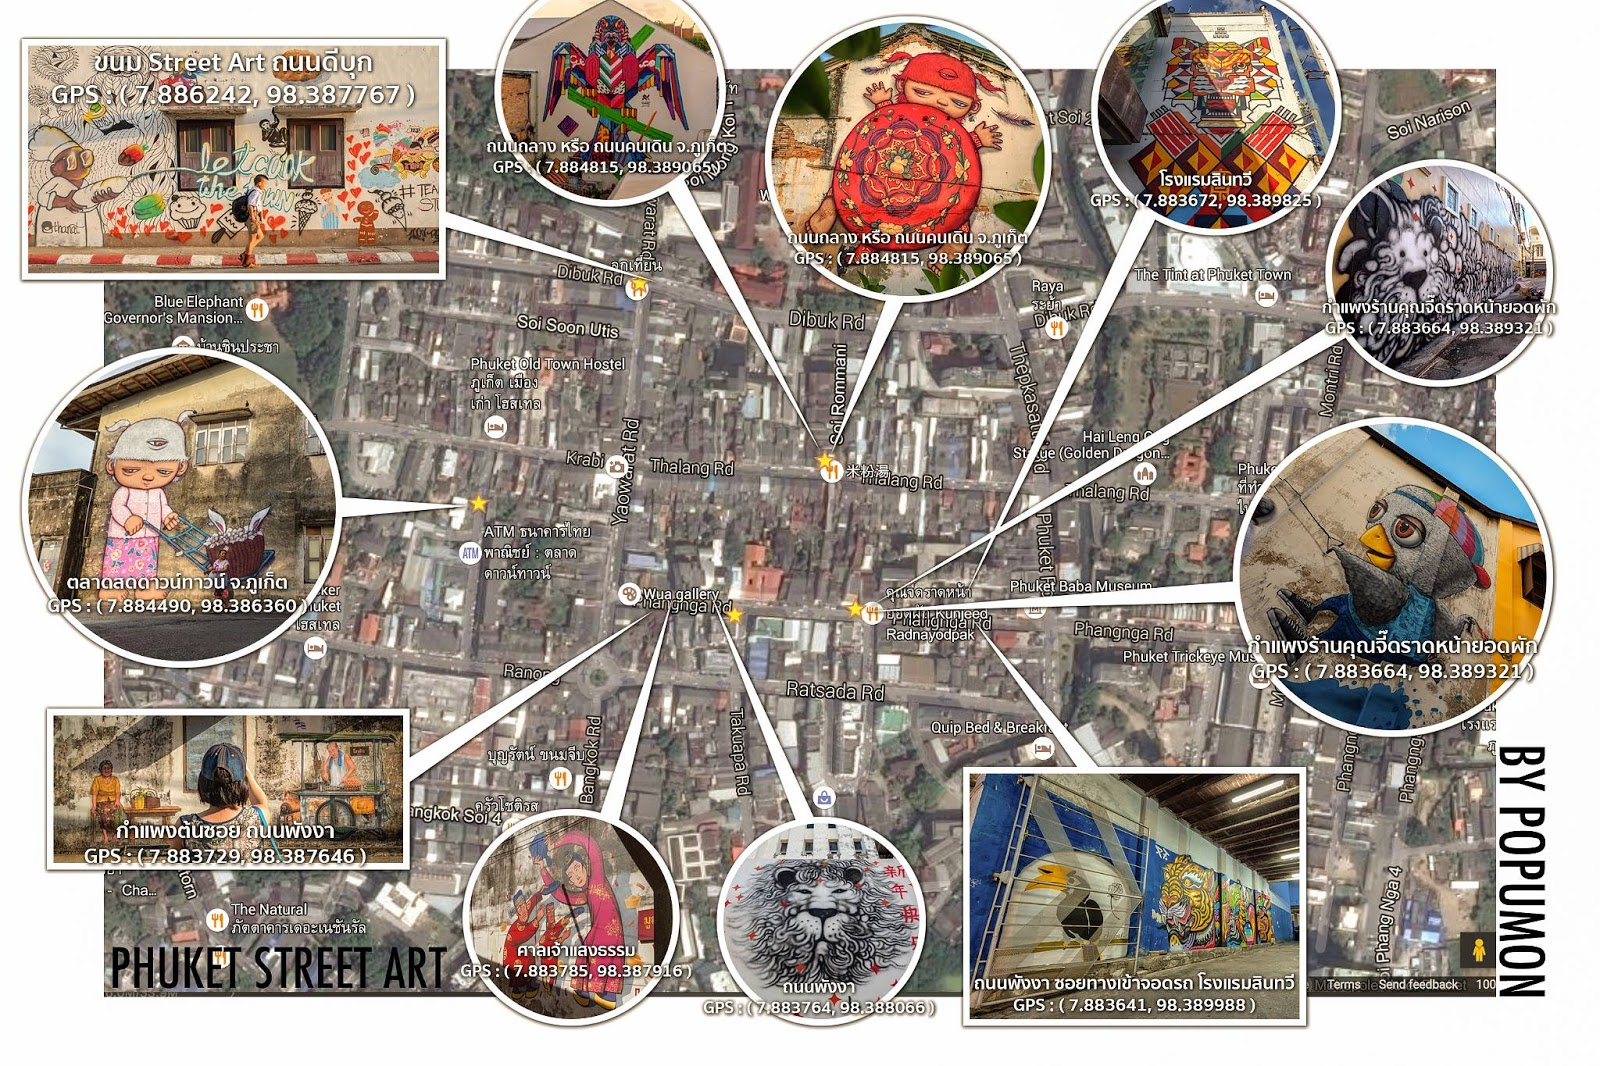 Things to do phuket town and street art this is a brilliant map of where the street art in phuket can be found gumiabroncs Image collections